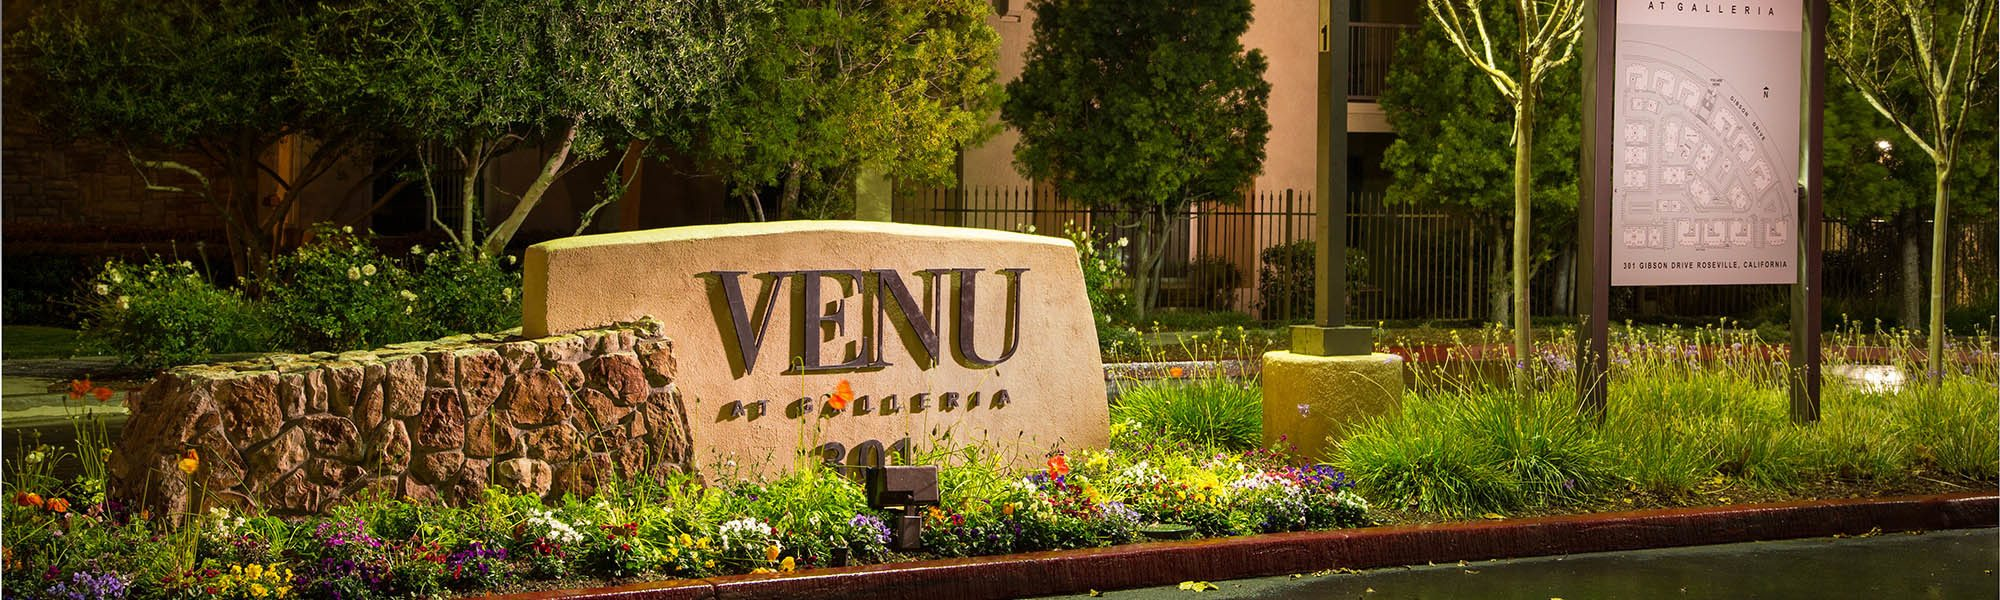 Read reviews of Venu at Galleria Condominium Rentals on our website